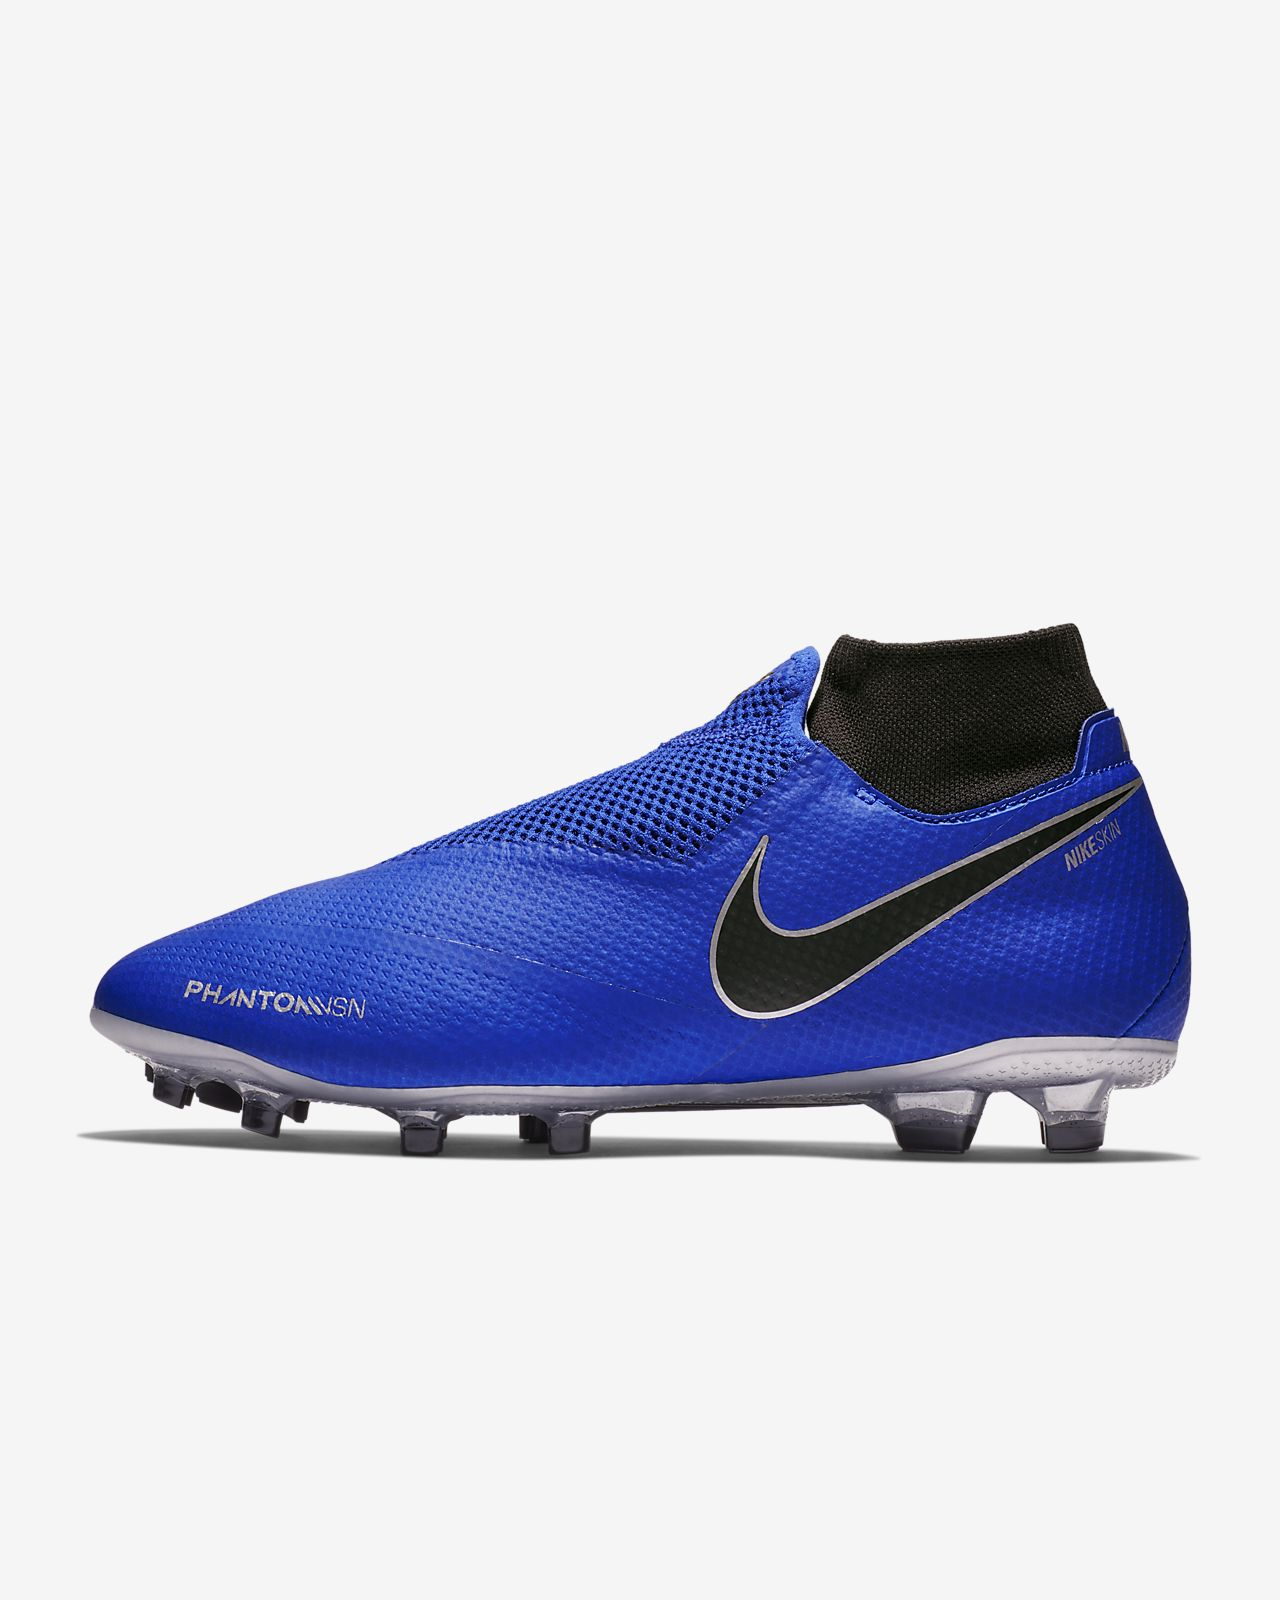 770c71493 ... Nike PhantomVSN Pro Dynamic Fit Game Over FG Firm-Ground Football Boot